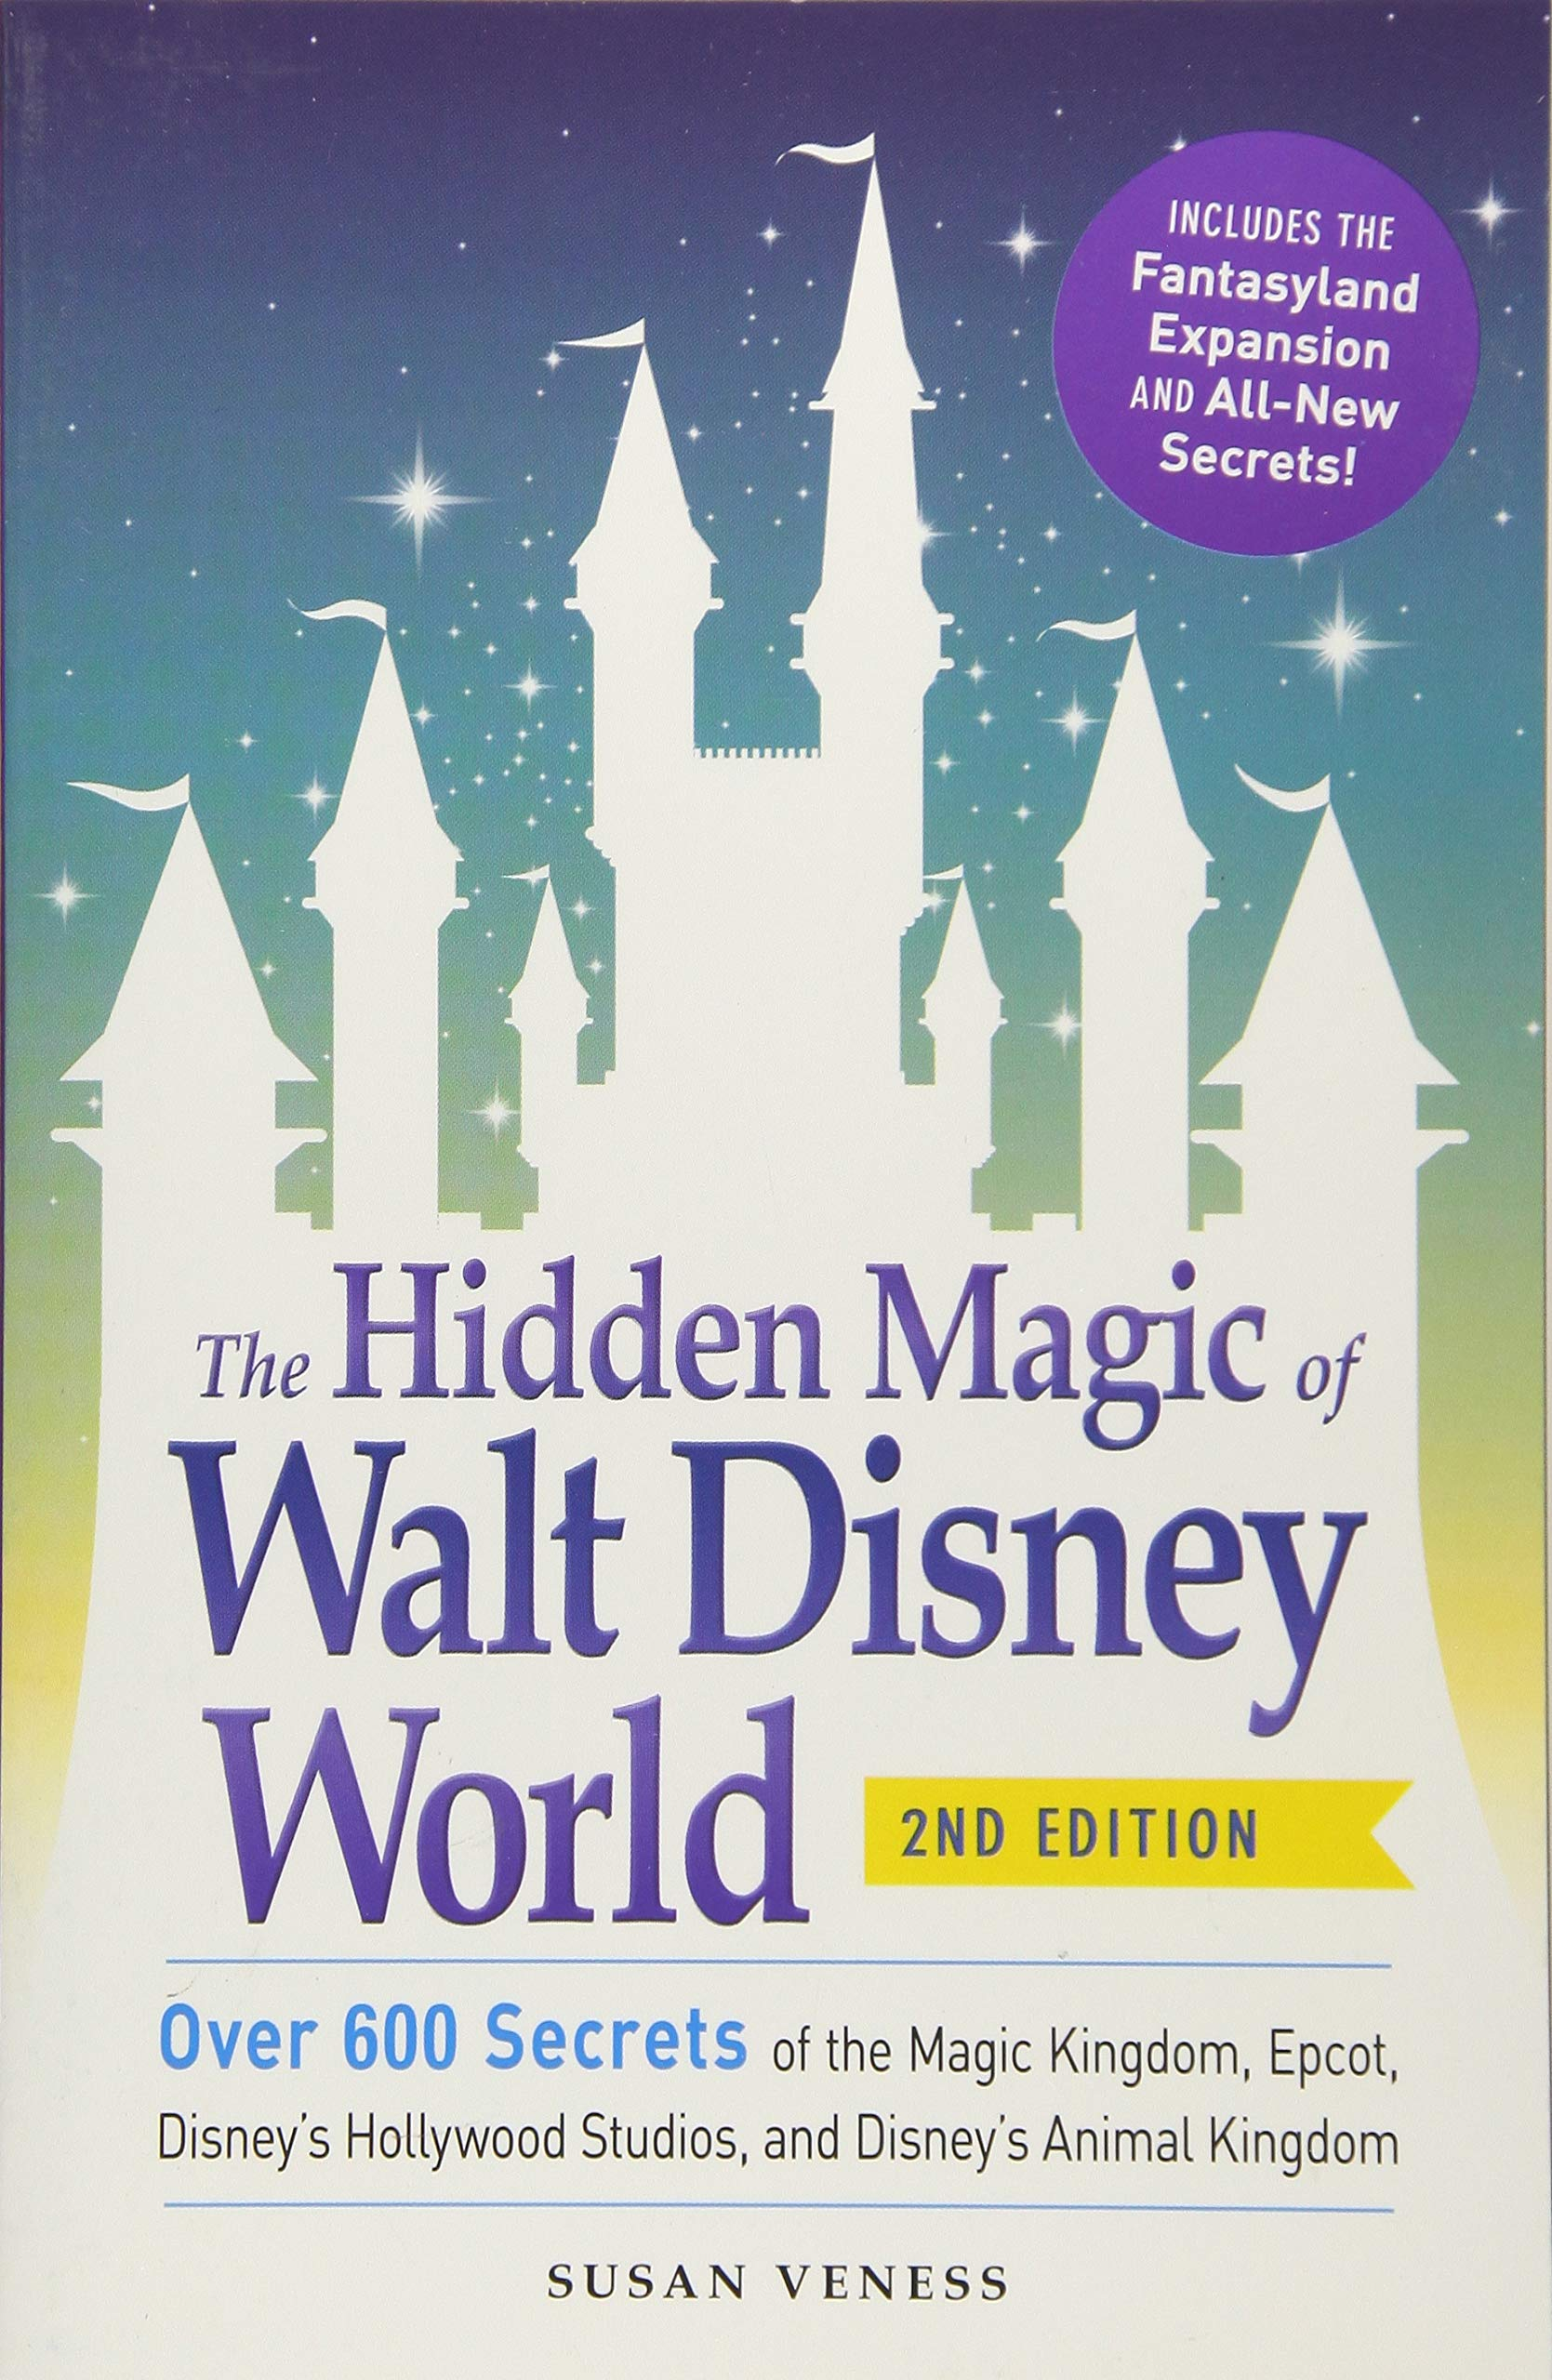 The Hidden Magic Of Walt Disney World  Over 600 Secrets Of The Magic Kingdom Epcot Disney's Hollywood Studios And Disney's Animal Kingdom